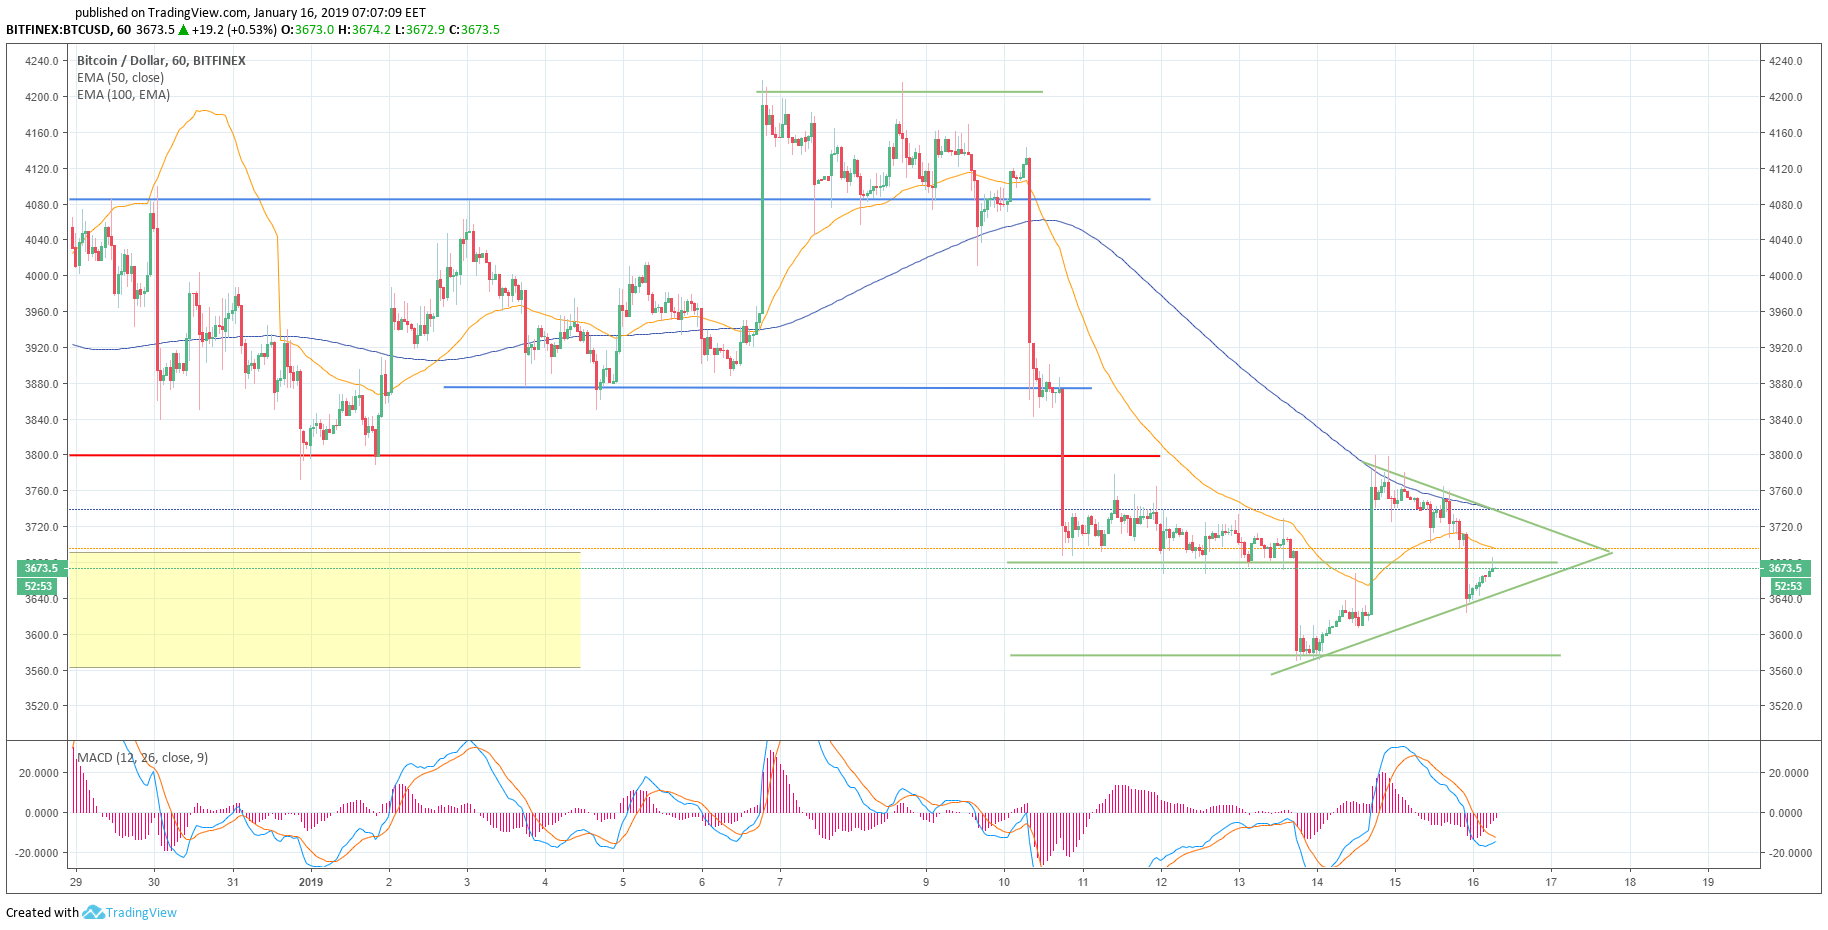 Cryptocurrencies market review 16 January